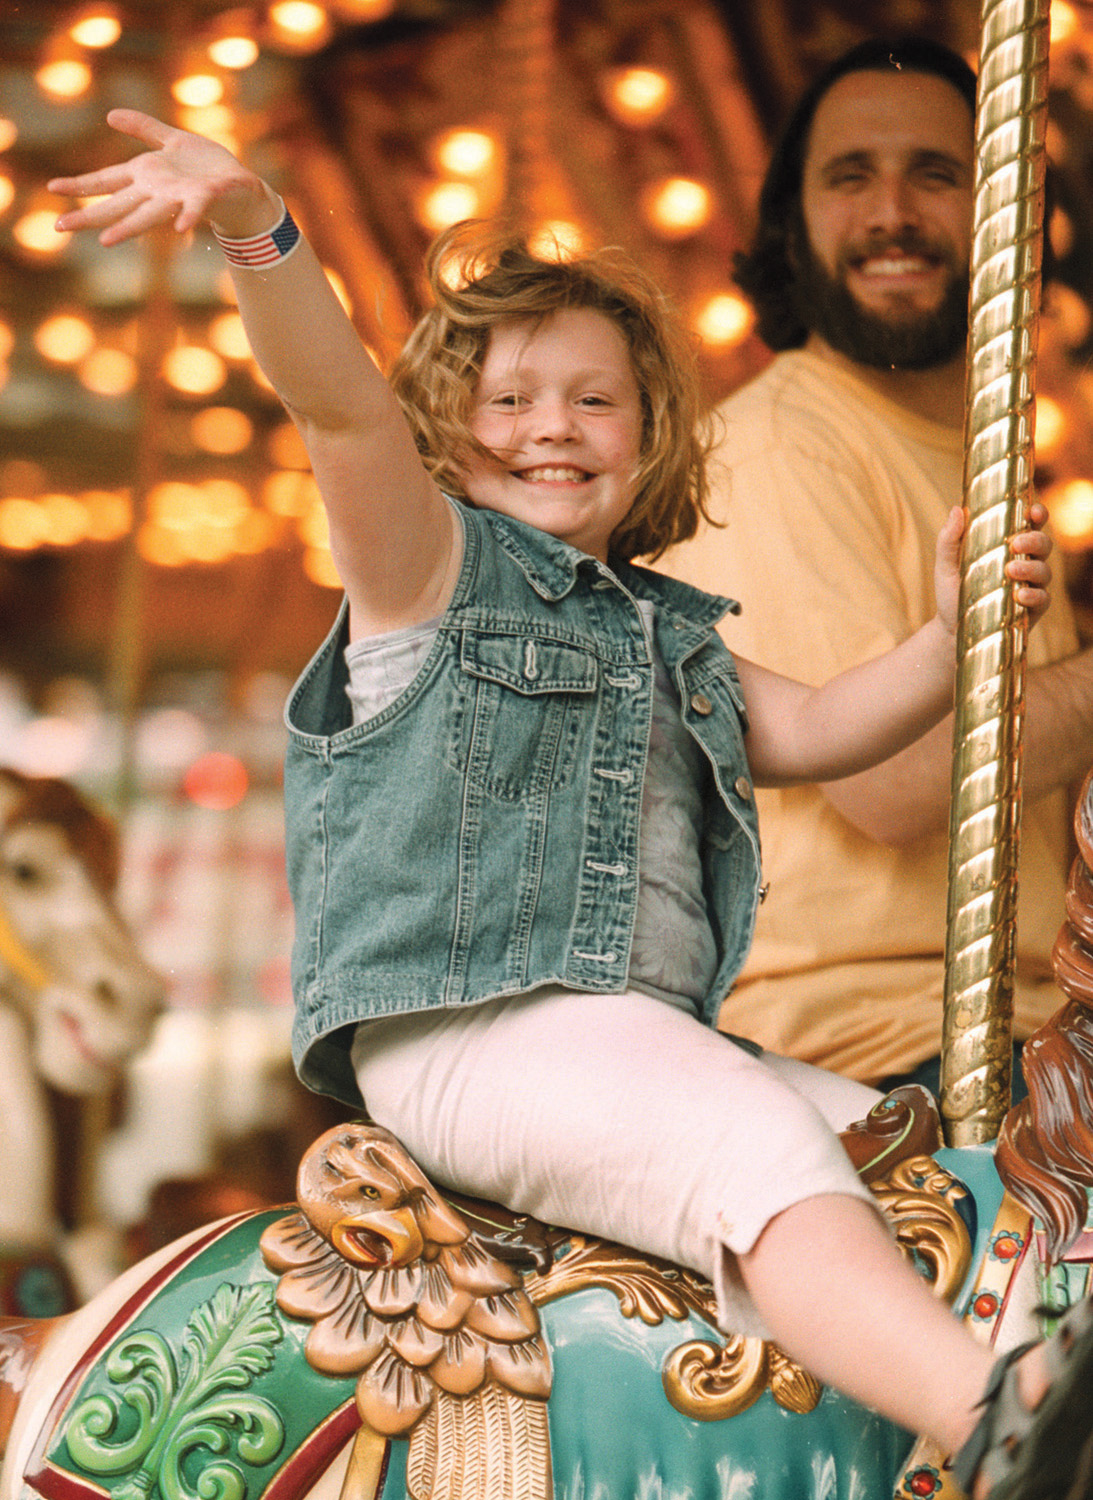 fair-carousel action1.jpg